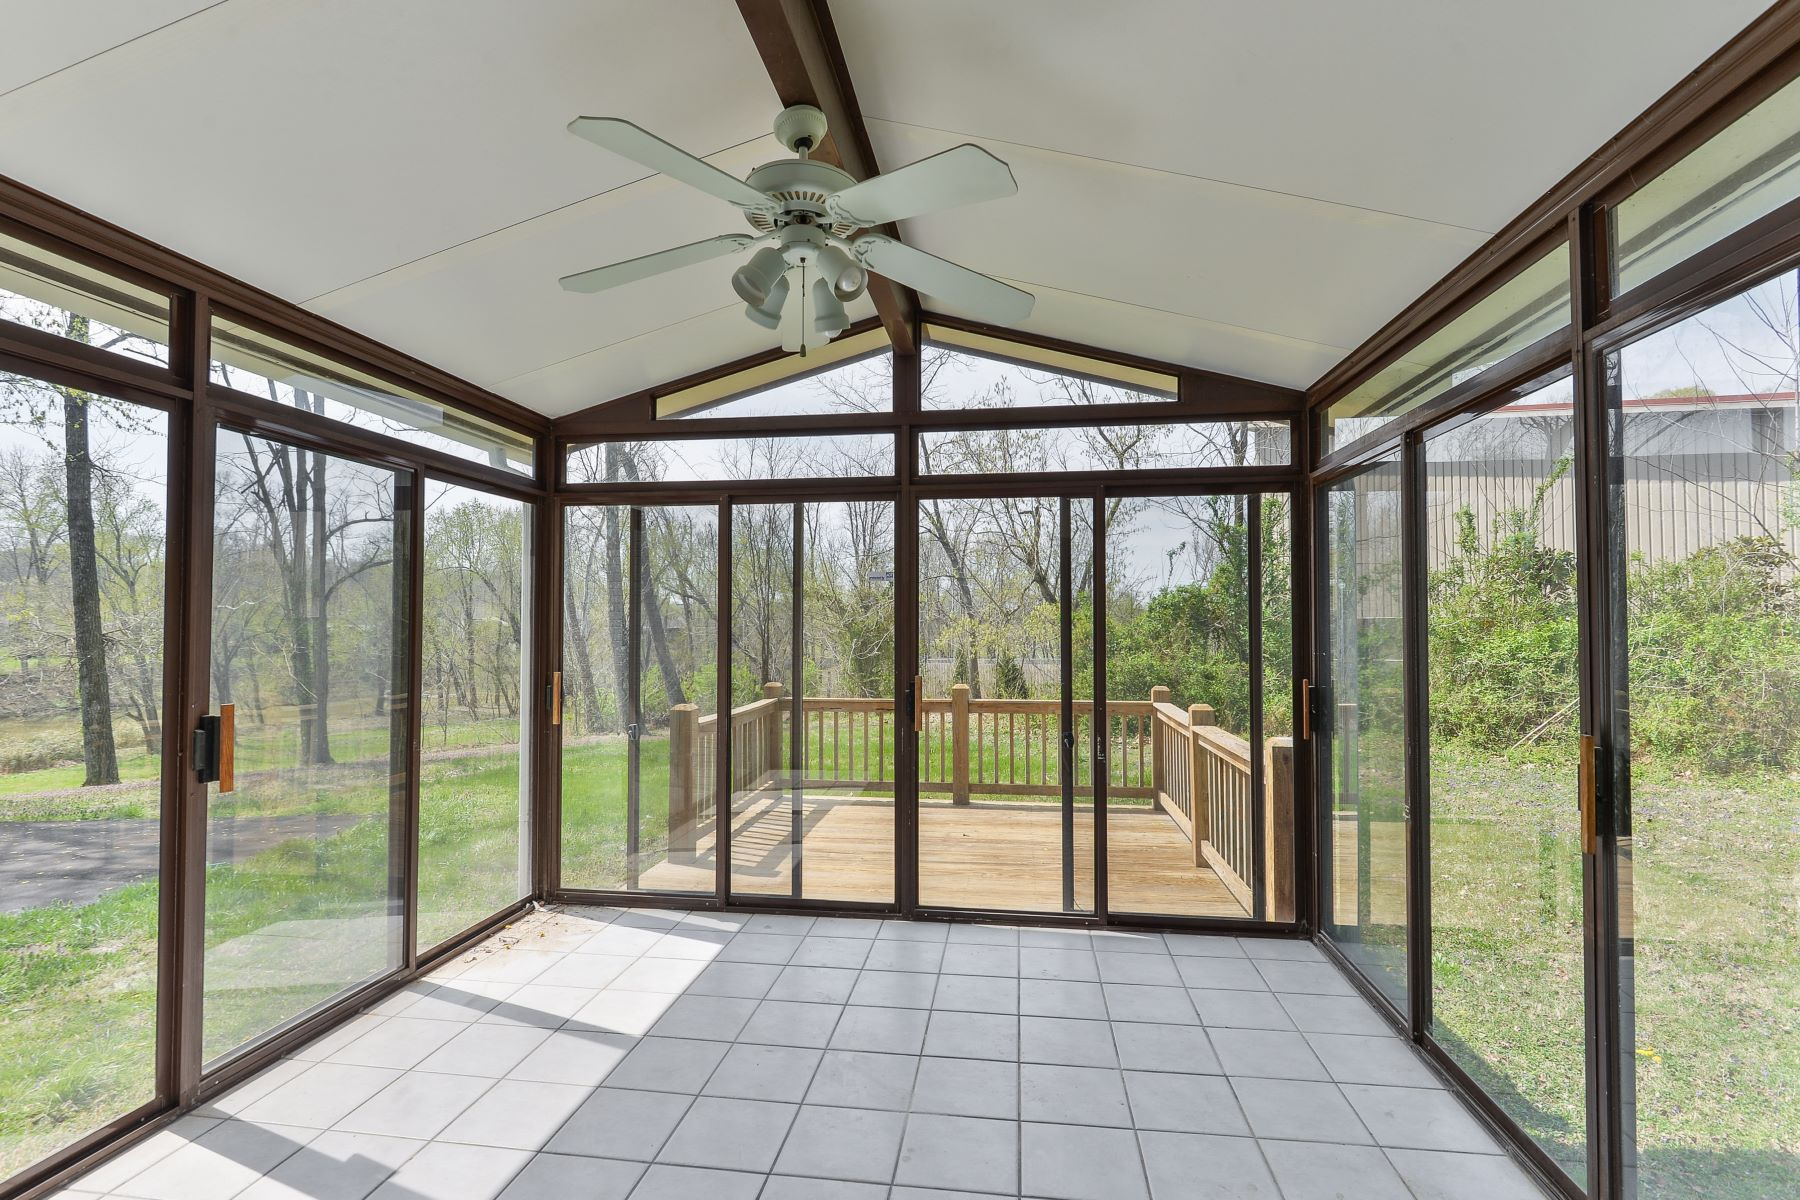 Additional photo for property listing at 8700 Lynnhall Court  Prospect, Kentucky 40059 United States